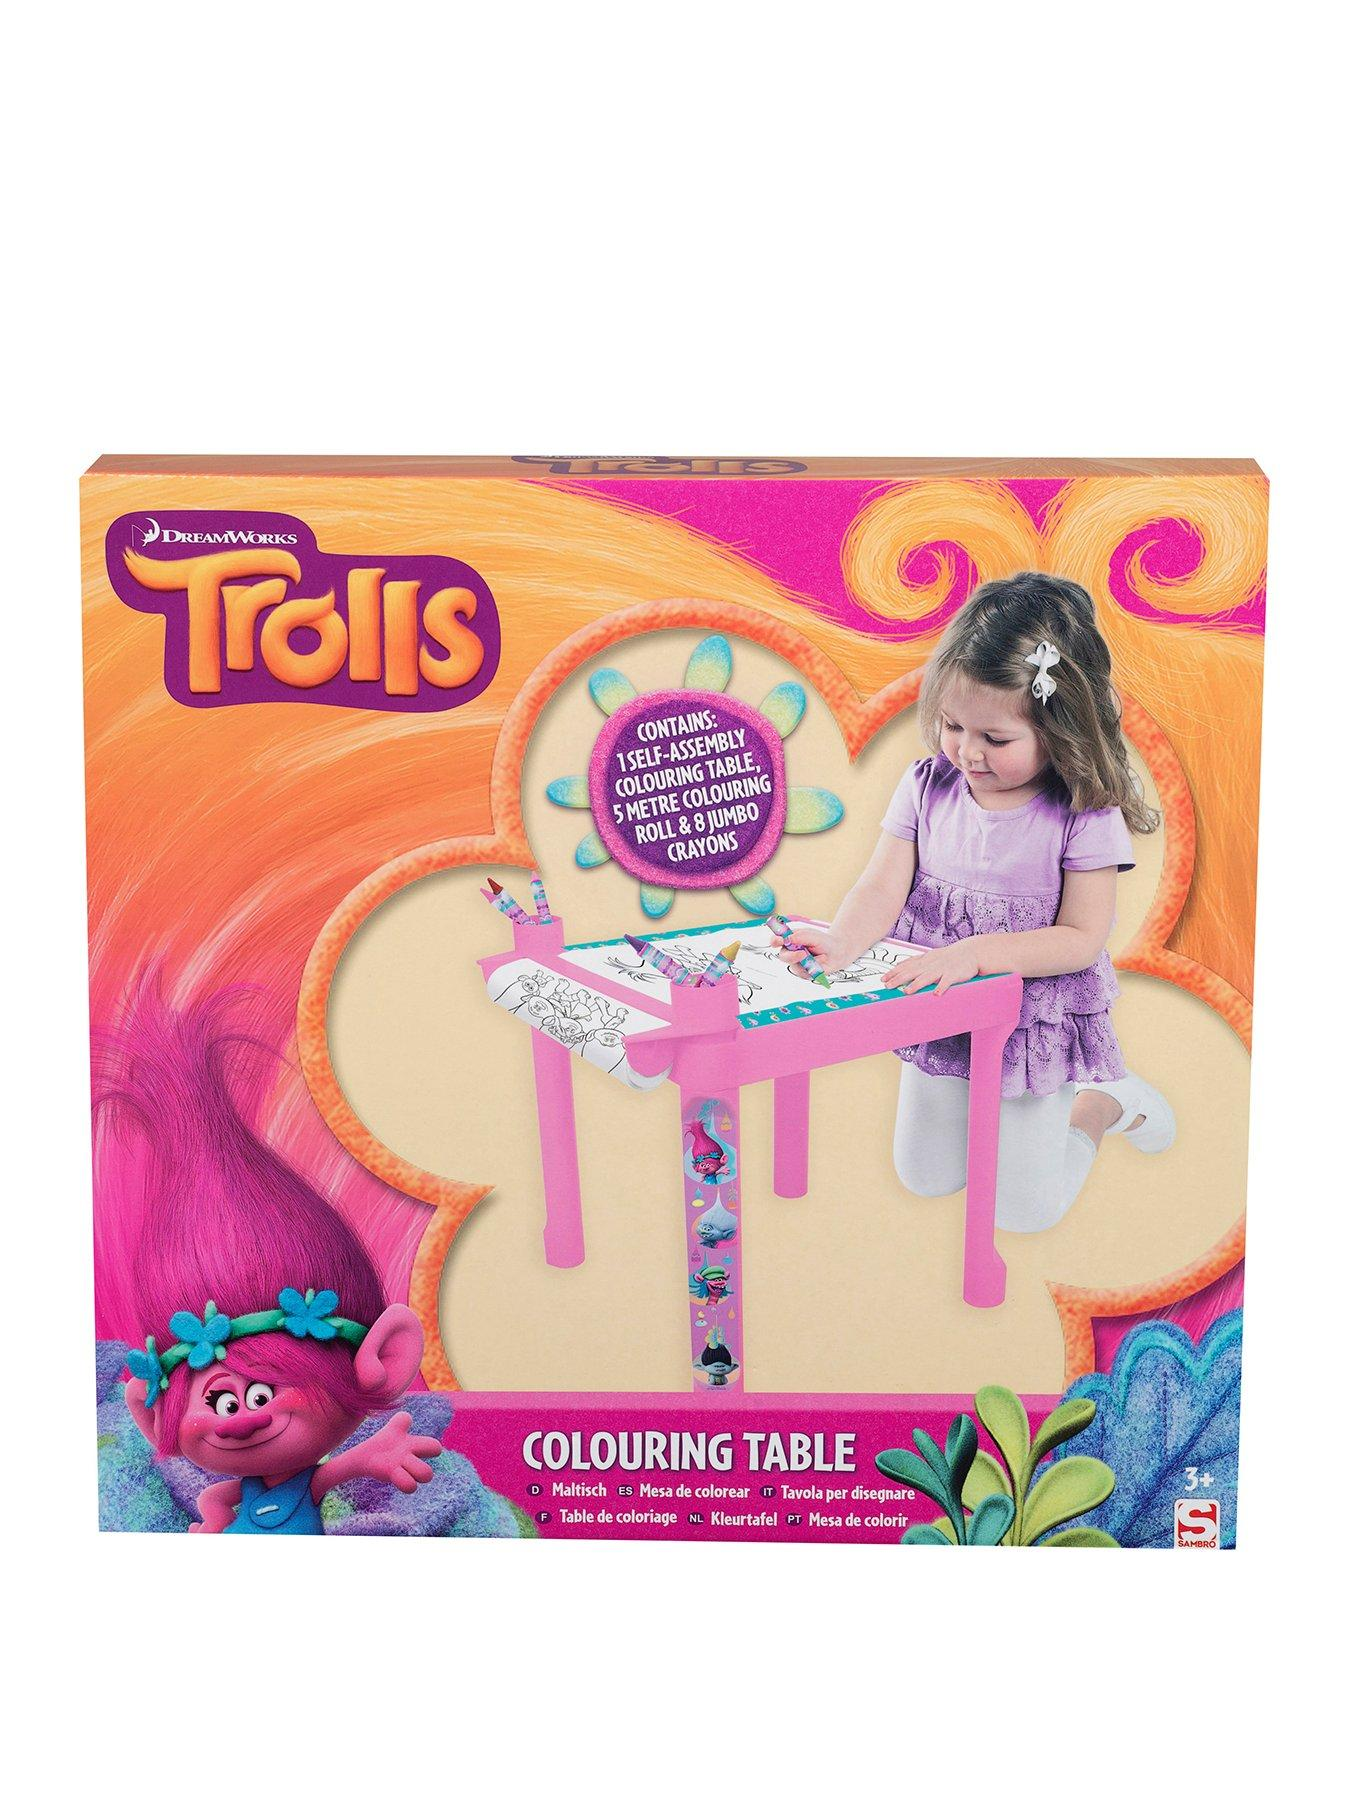 Compare prices for Dreamworks Trolls Colouring Table